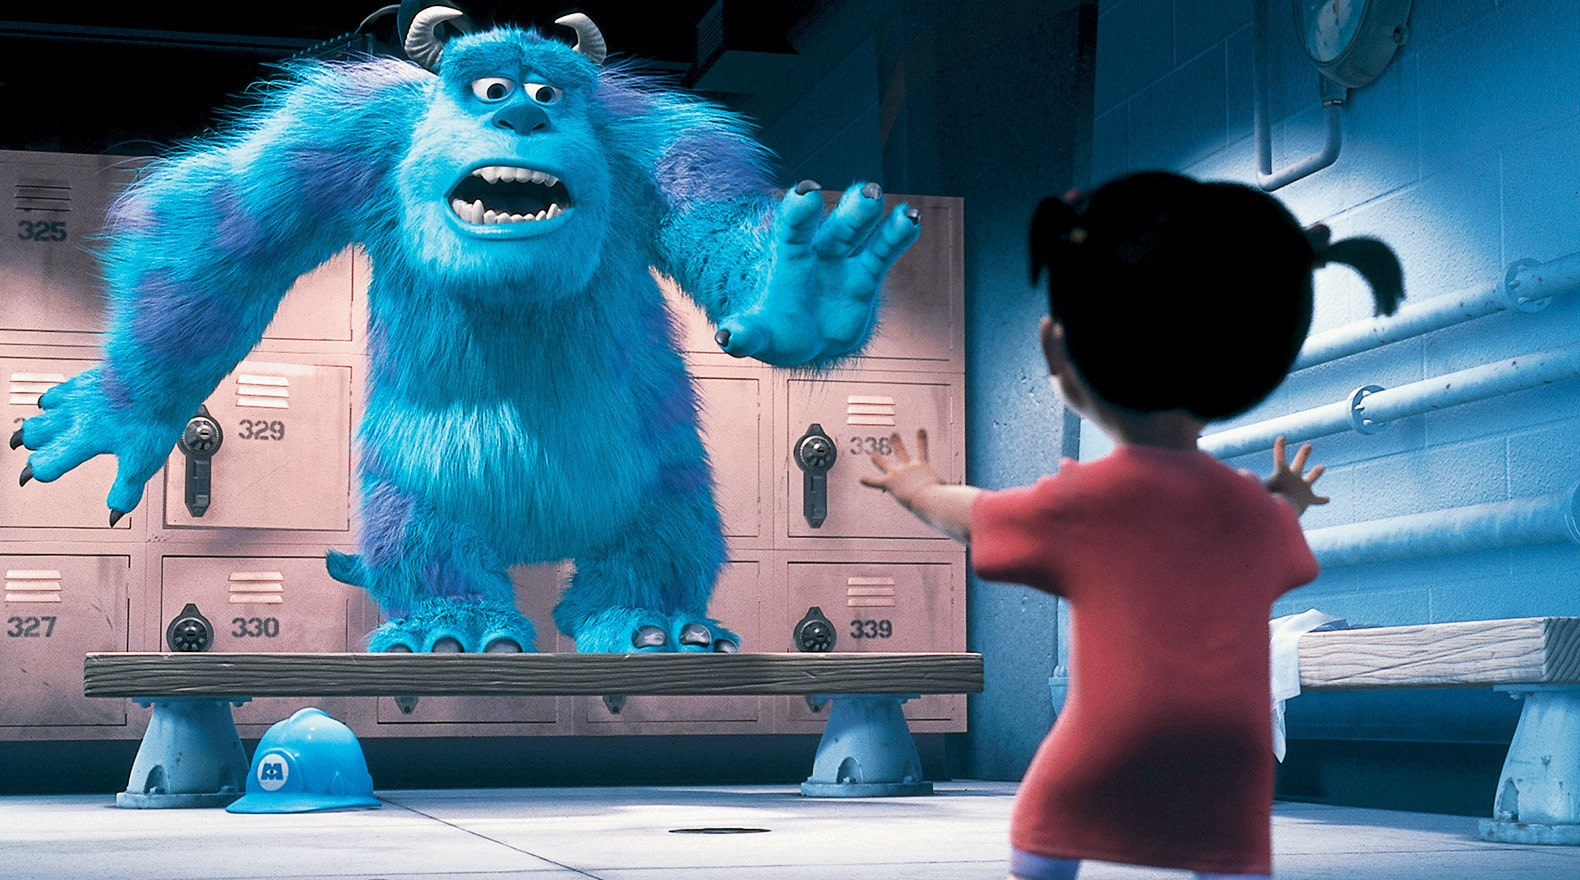 John Goodman as Sulley afraid and standing on a locker room bench when he first meets Boo in Monsters, Inc.